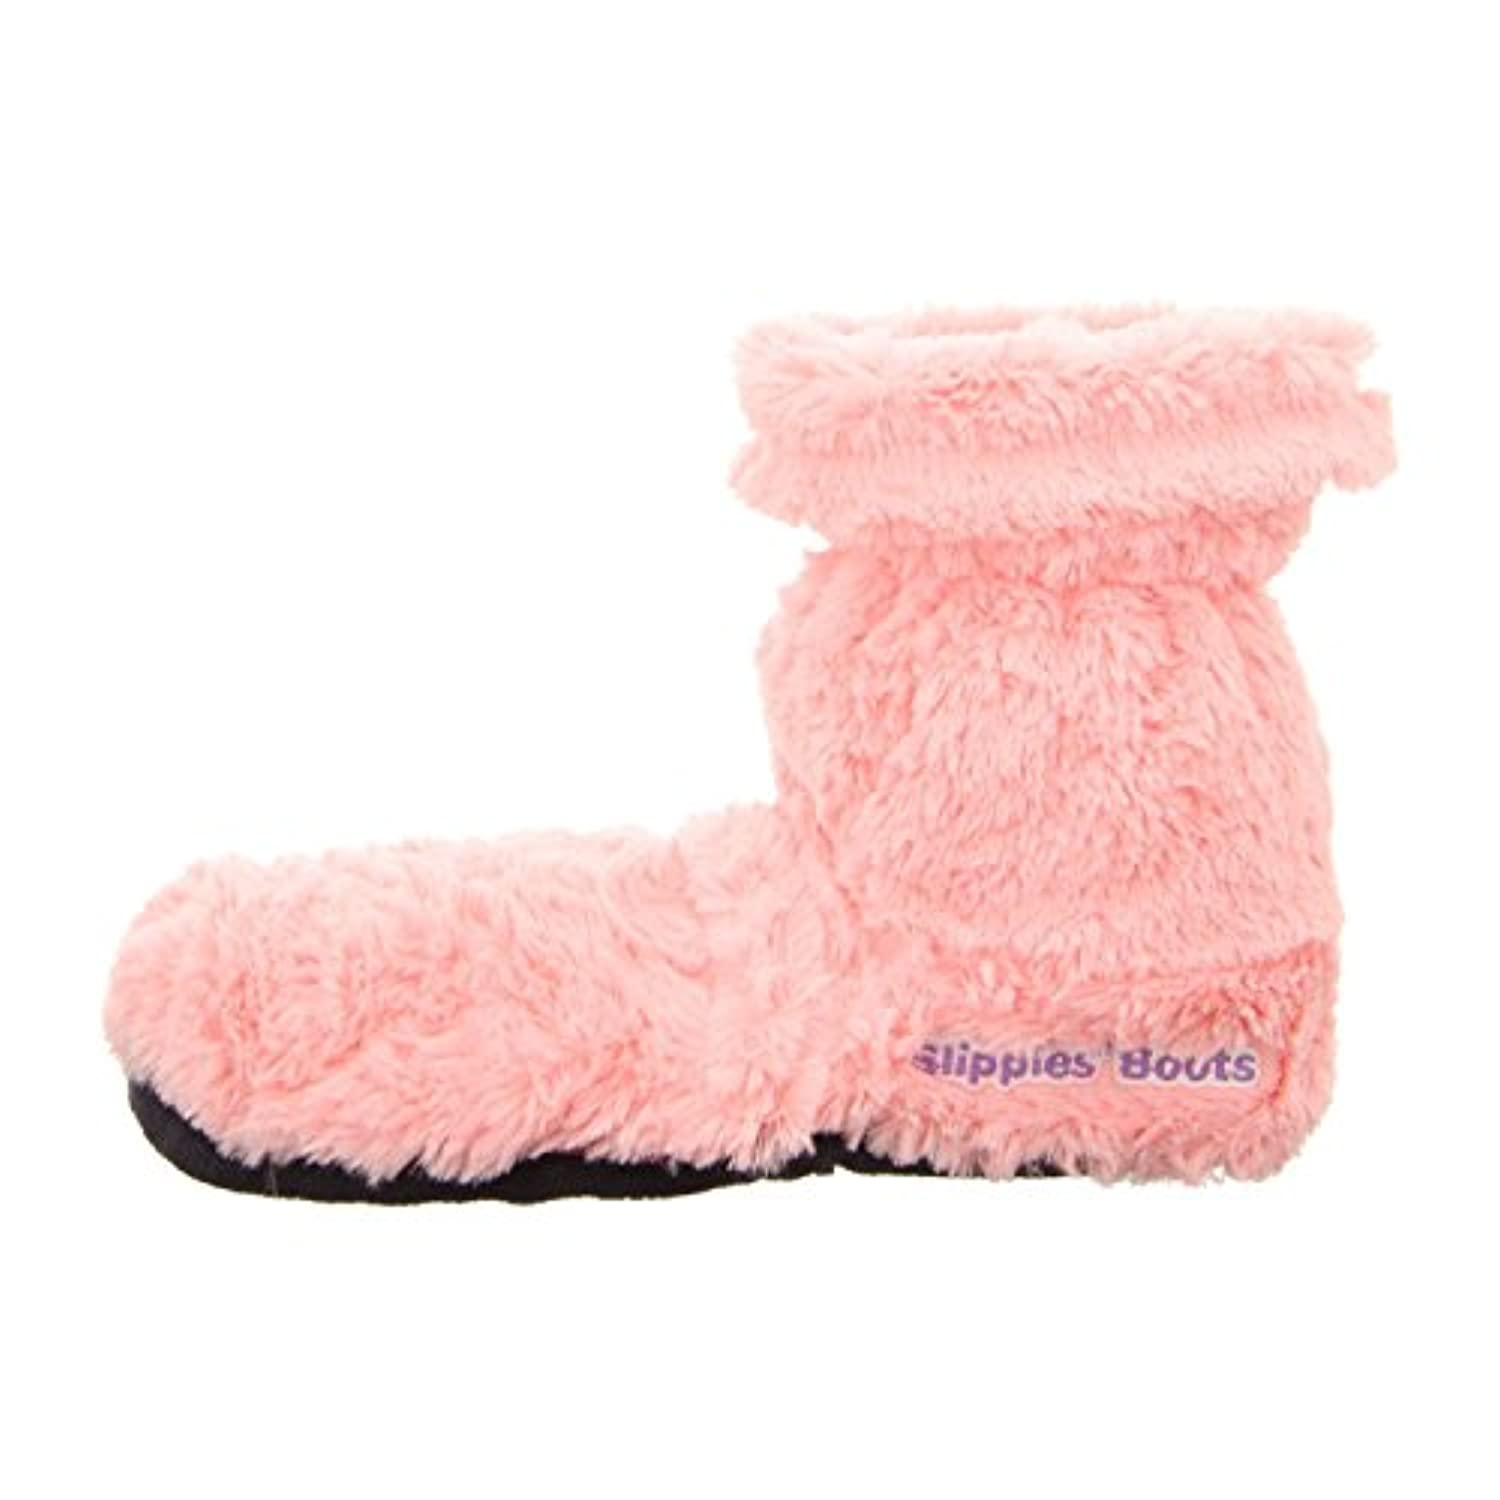 Warmies Slippies Deluxe Boots Size 4 - 8 with Removable Filling Pink by Greenlife Value